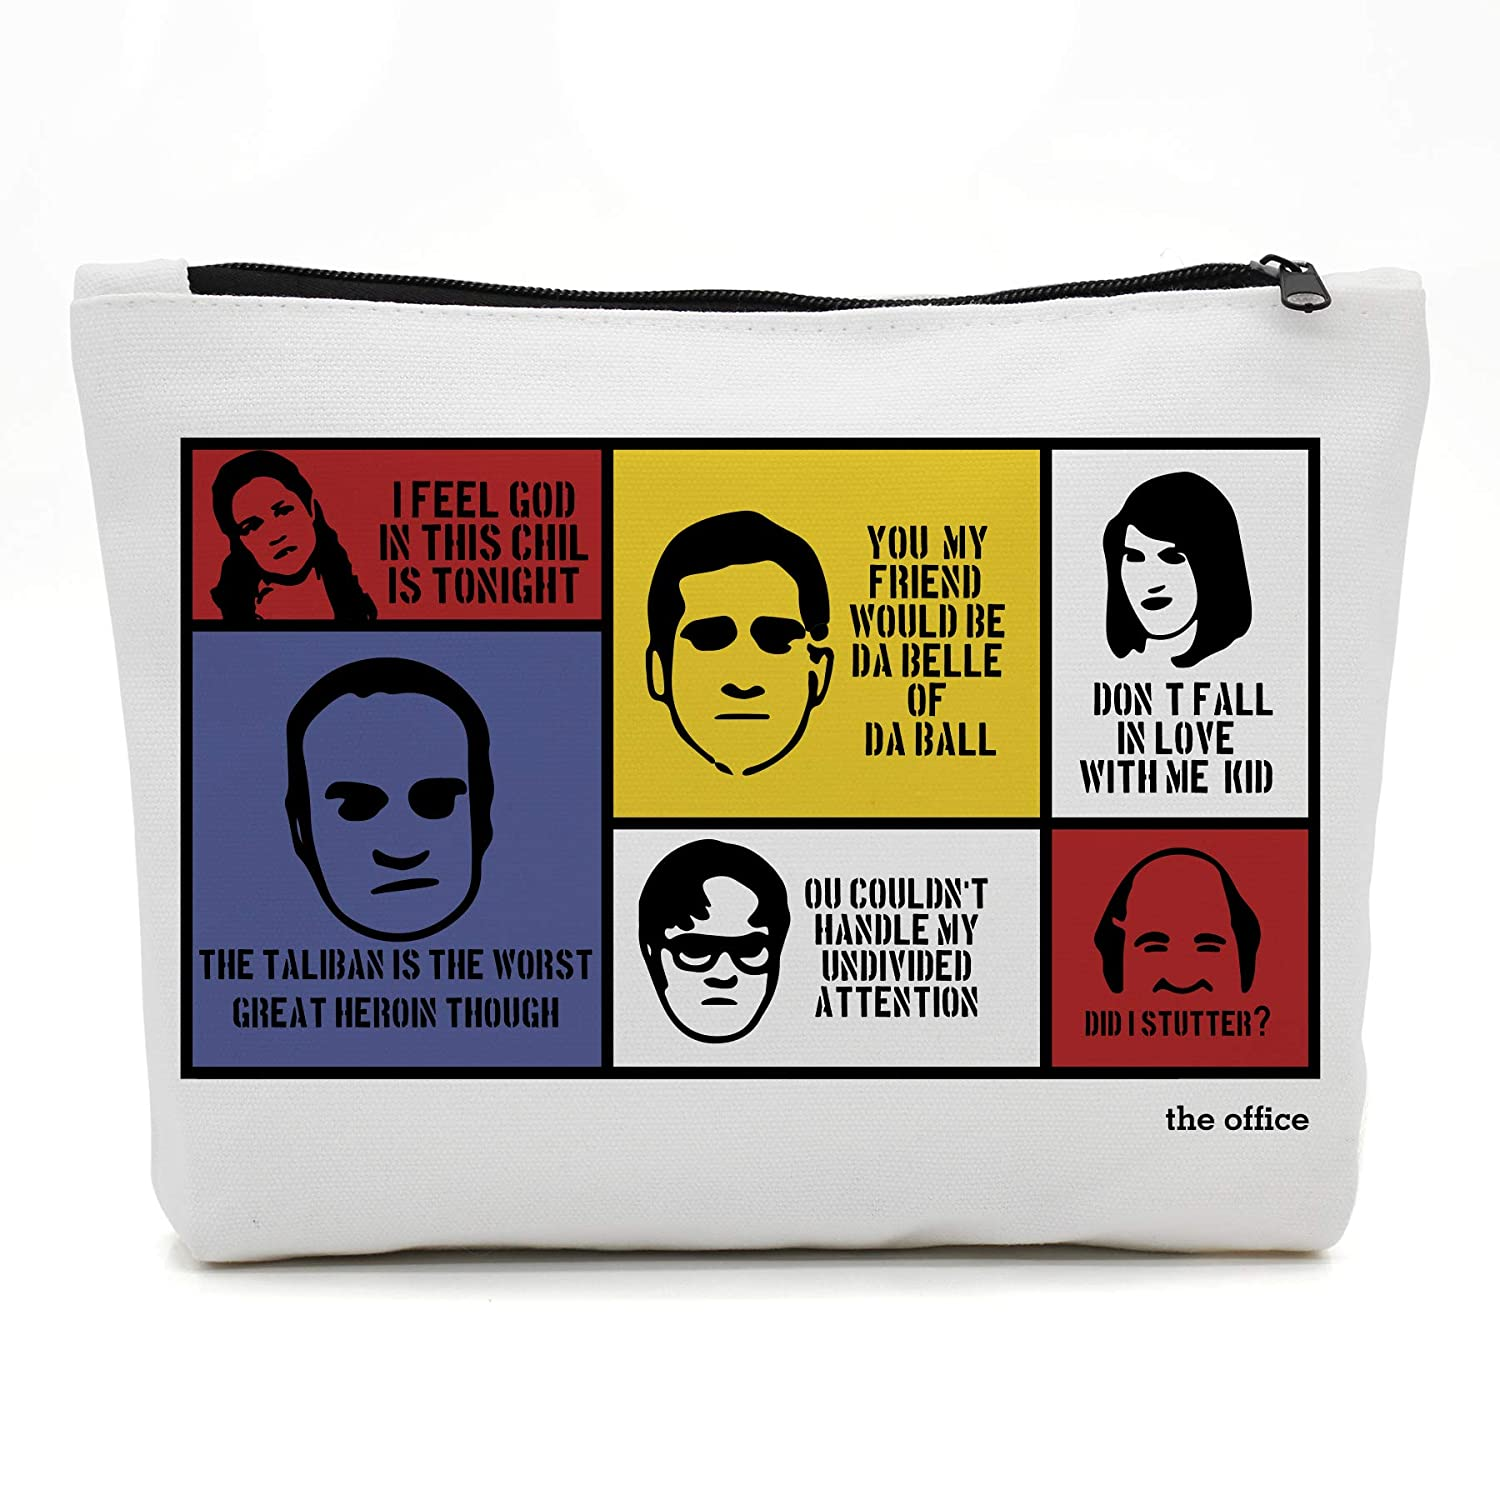 Funny The Office TV Show Theme Natural Cotton Makeup Bag   Zippered Luggage Pouch Multifunction Make-up Small Bag For Mom Wife Friend Sister Colleague Coworker Women Kids Gift